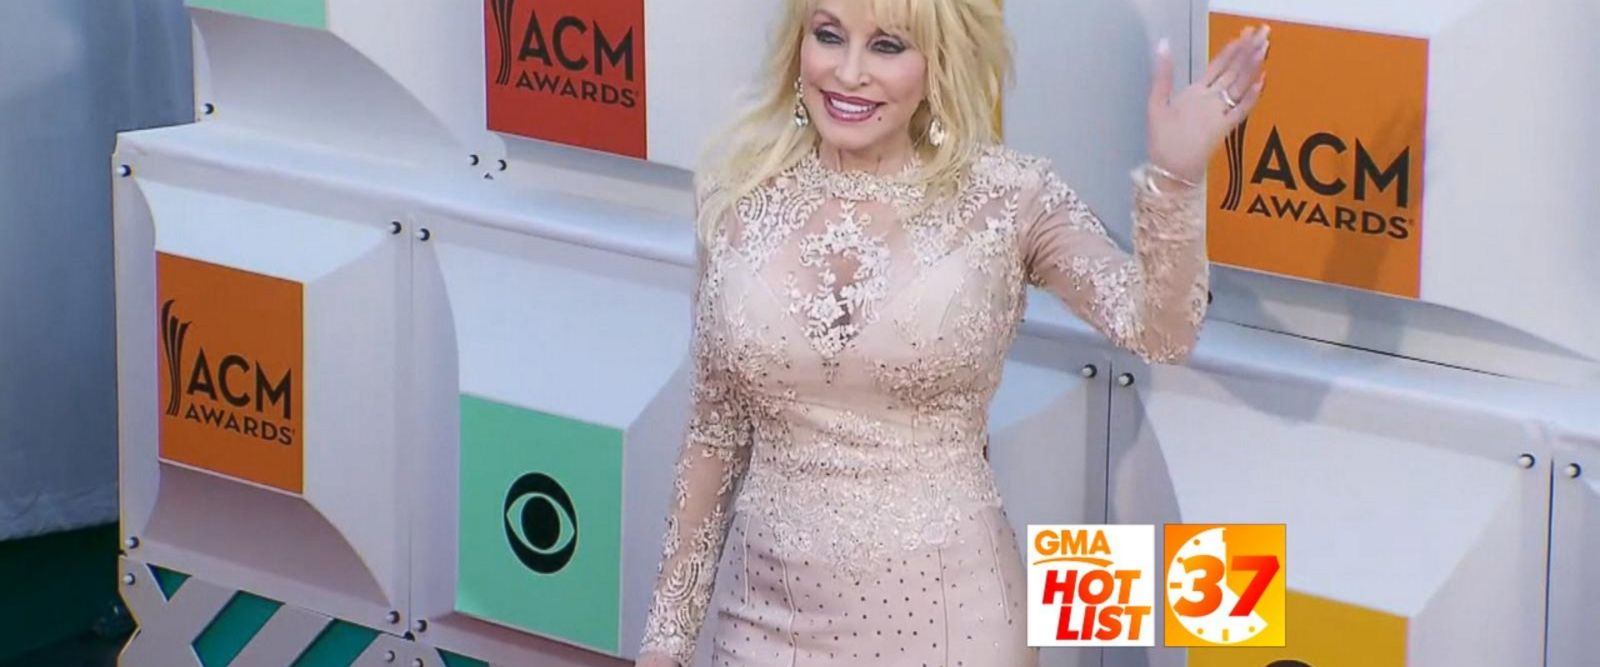 VIDEO: 'GMA' Hot List: Dolly Parton receives 2 Guinness World Record awards